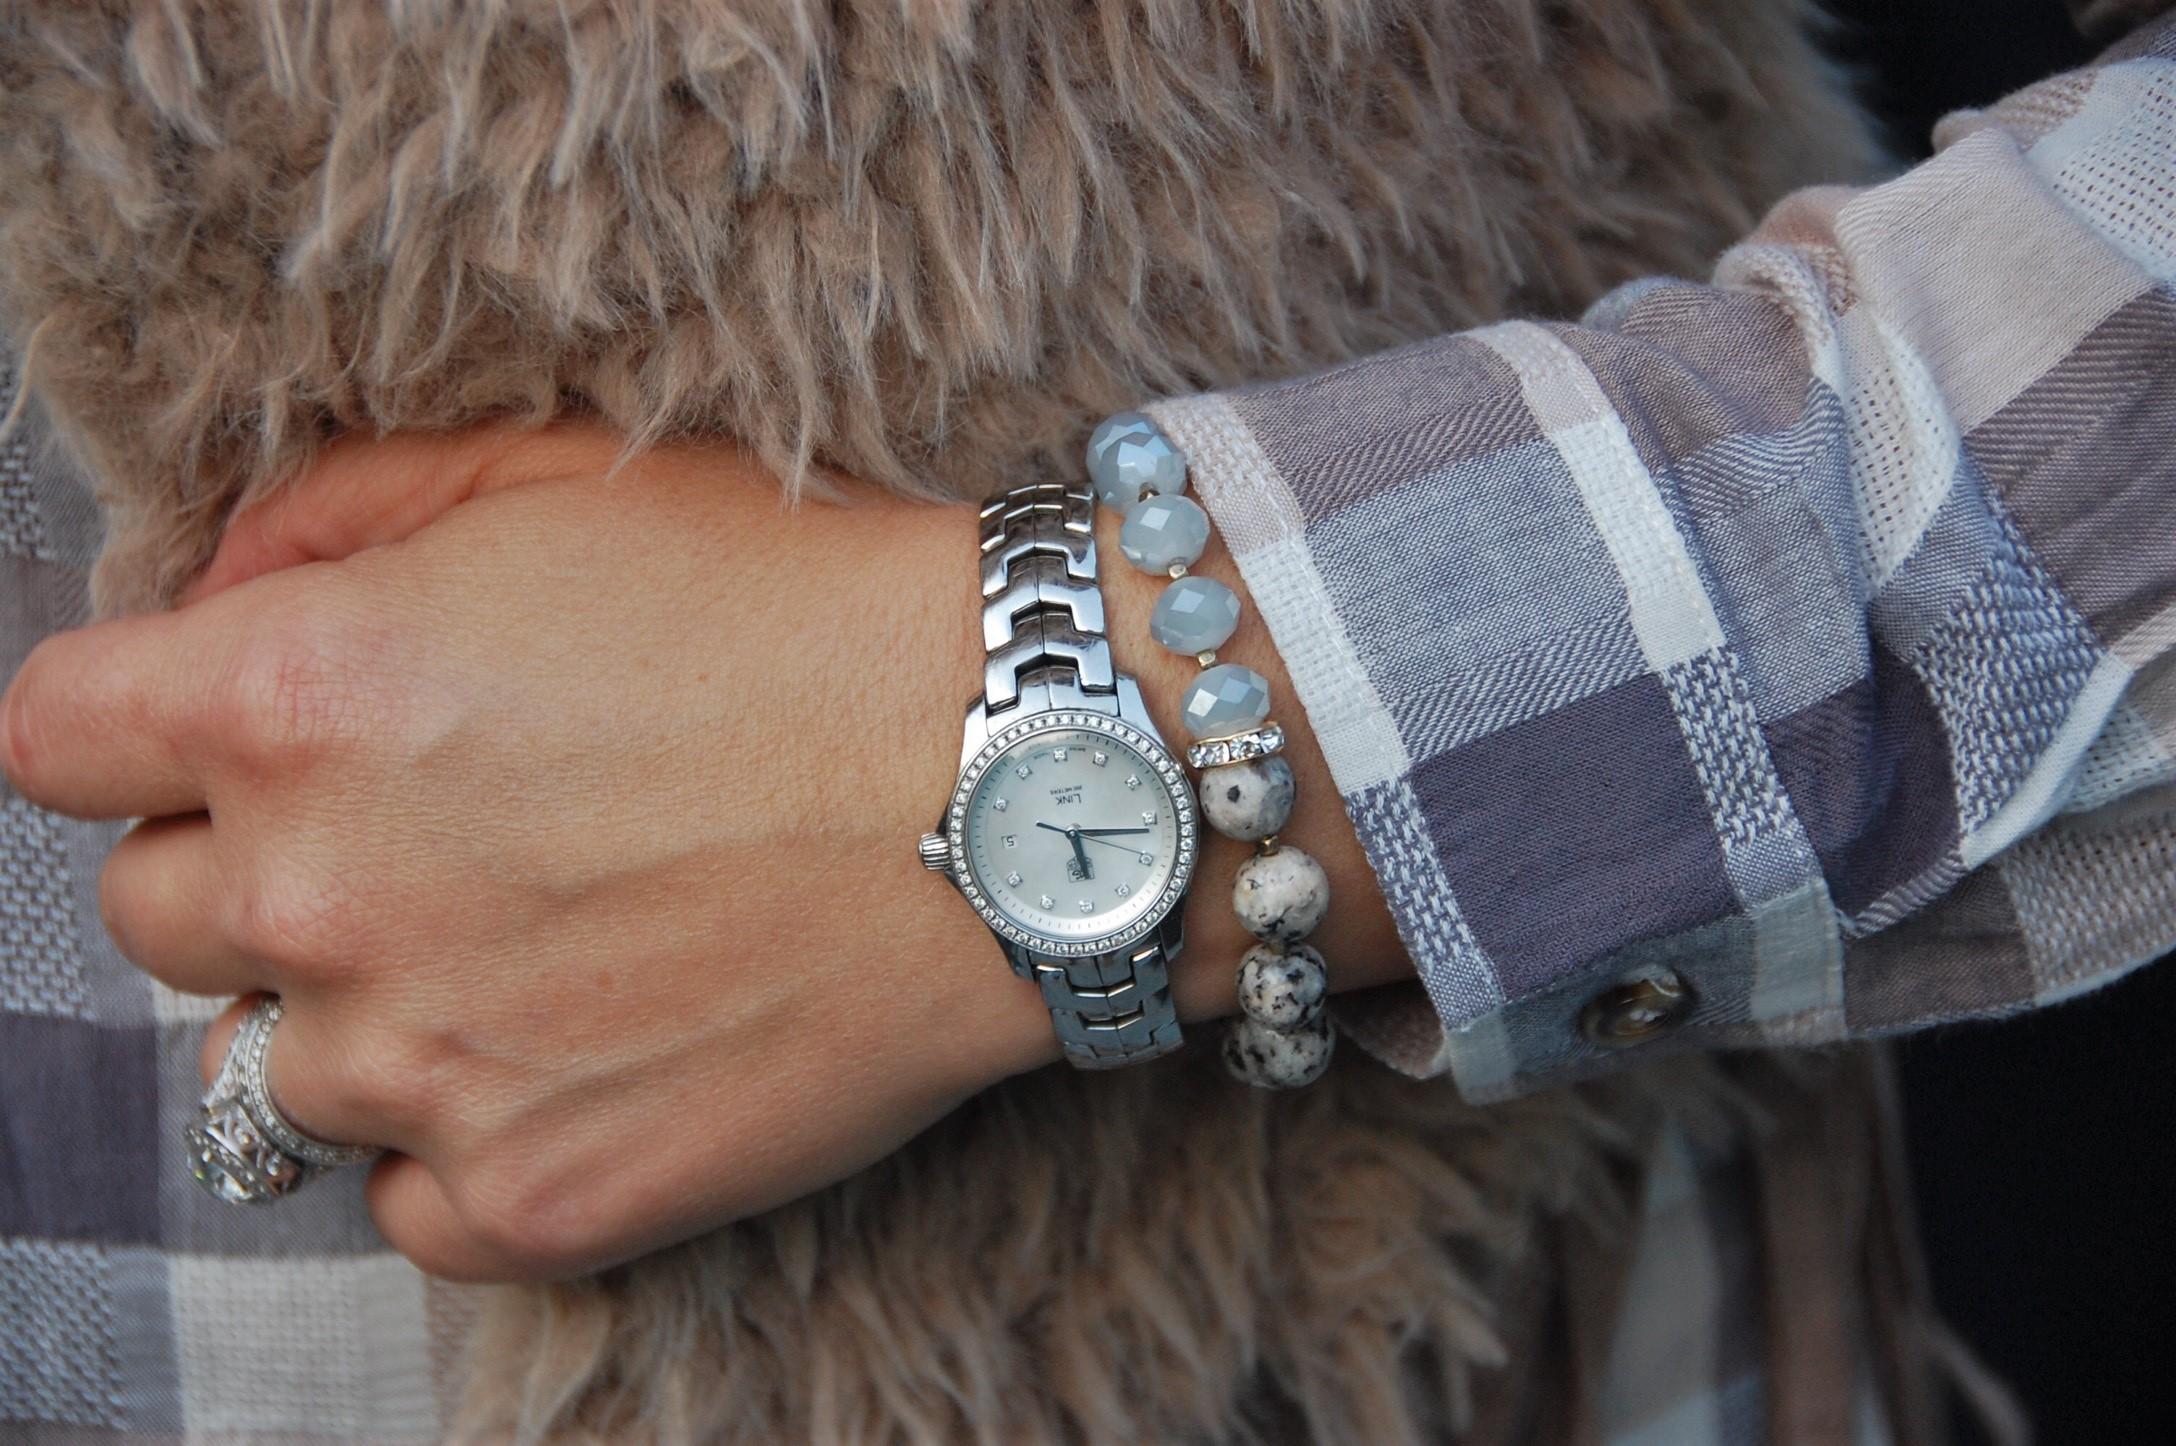 This beautiful handmade bracelet came in my Fabulous Good.com subscription box by Honey Butter Boutique. I wore it on the same hand as my Tag Heuer watch